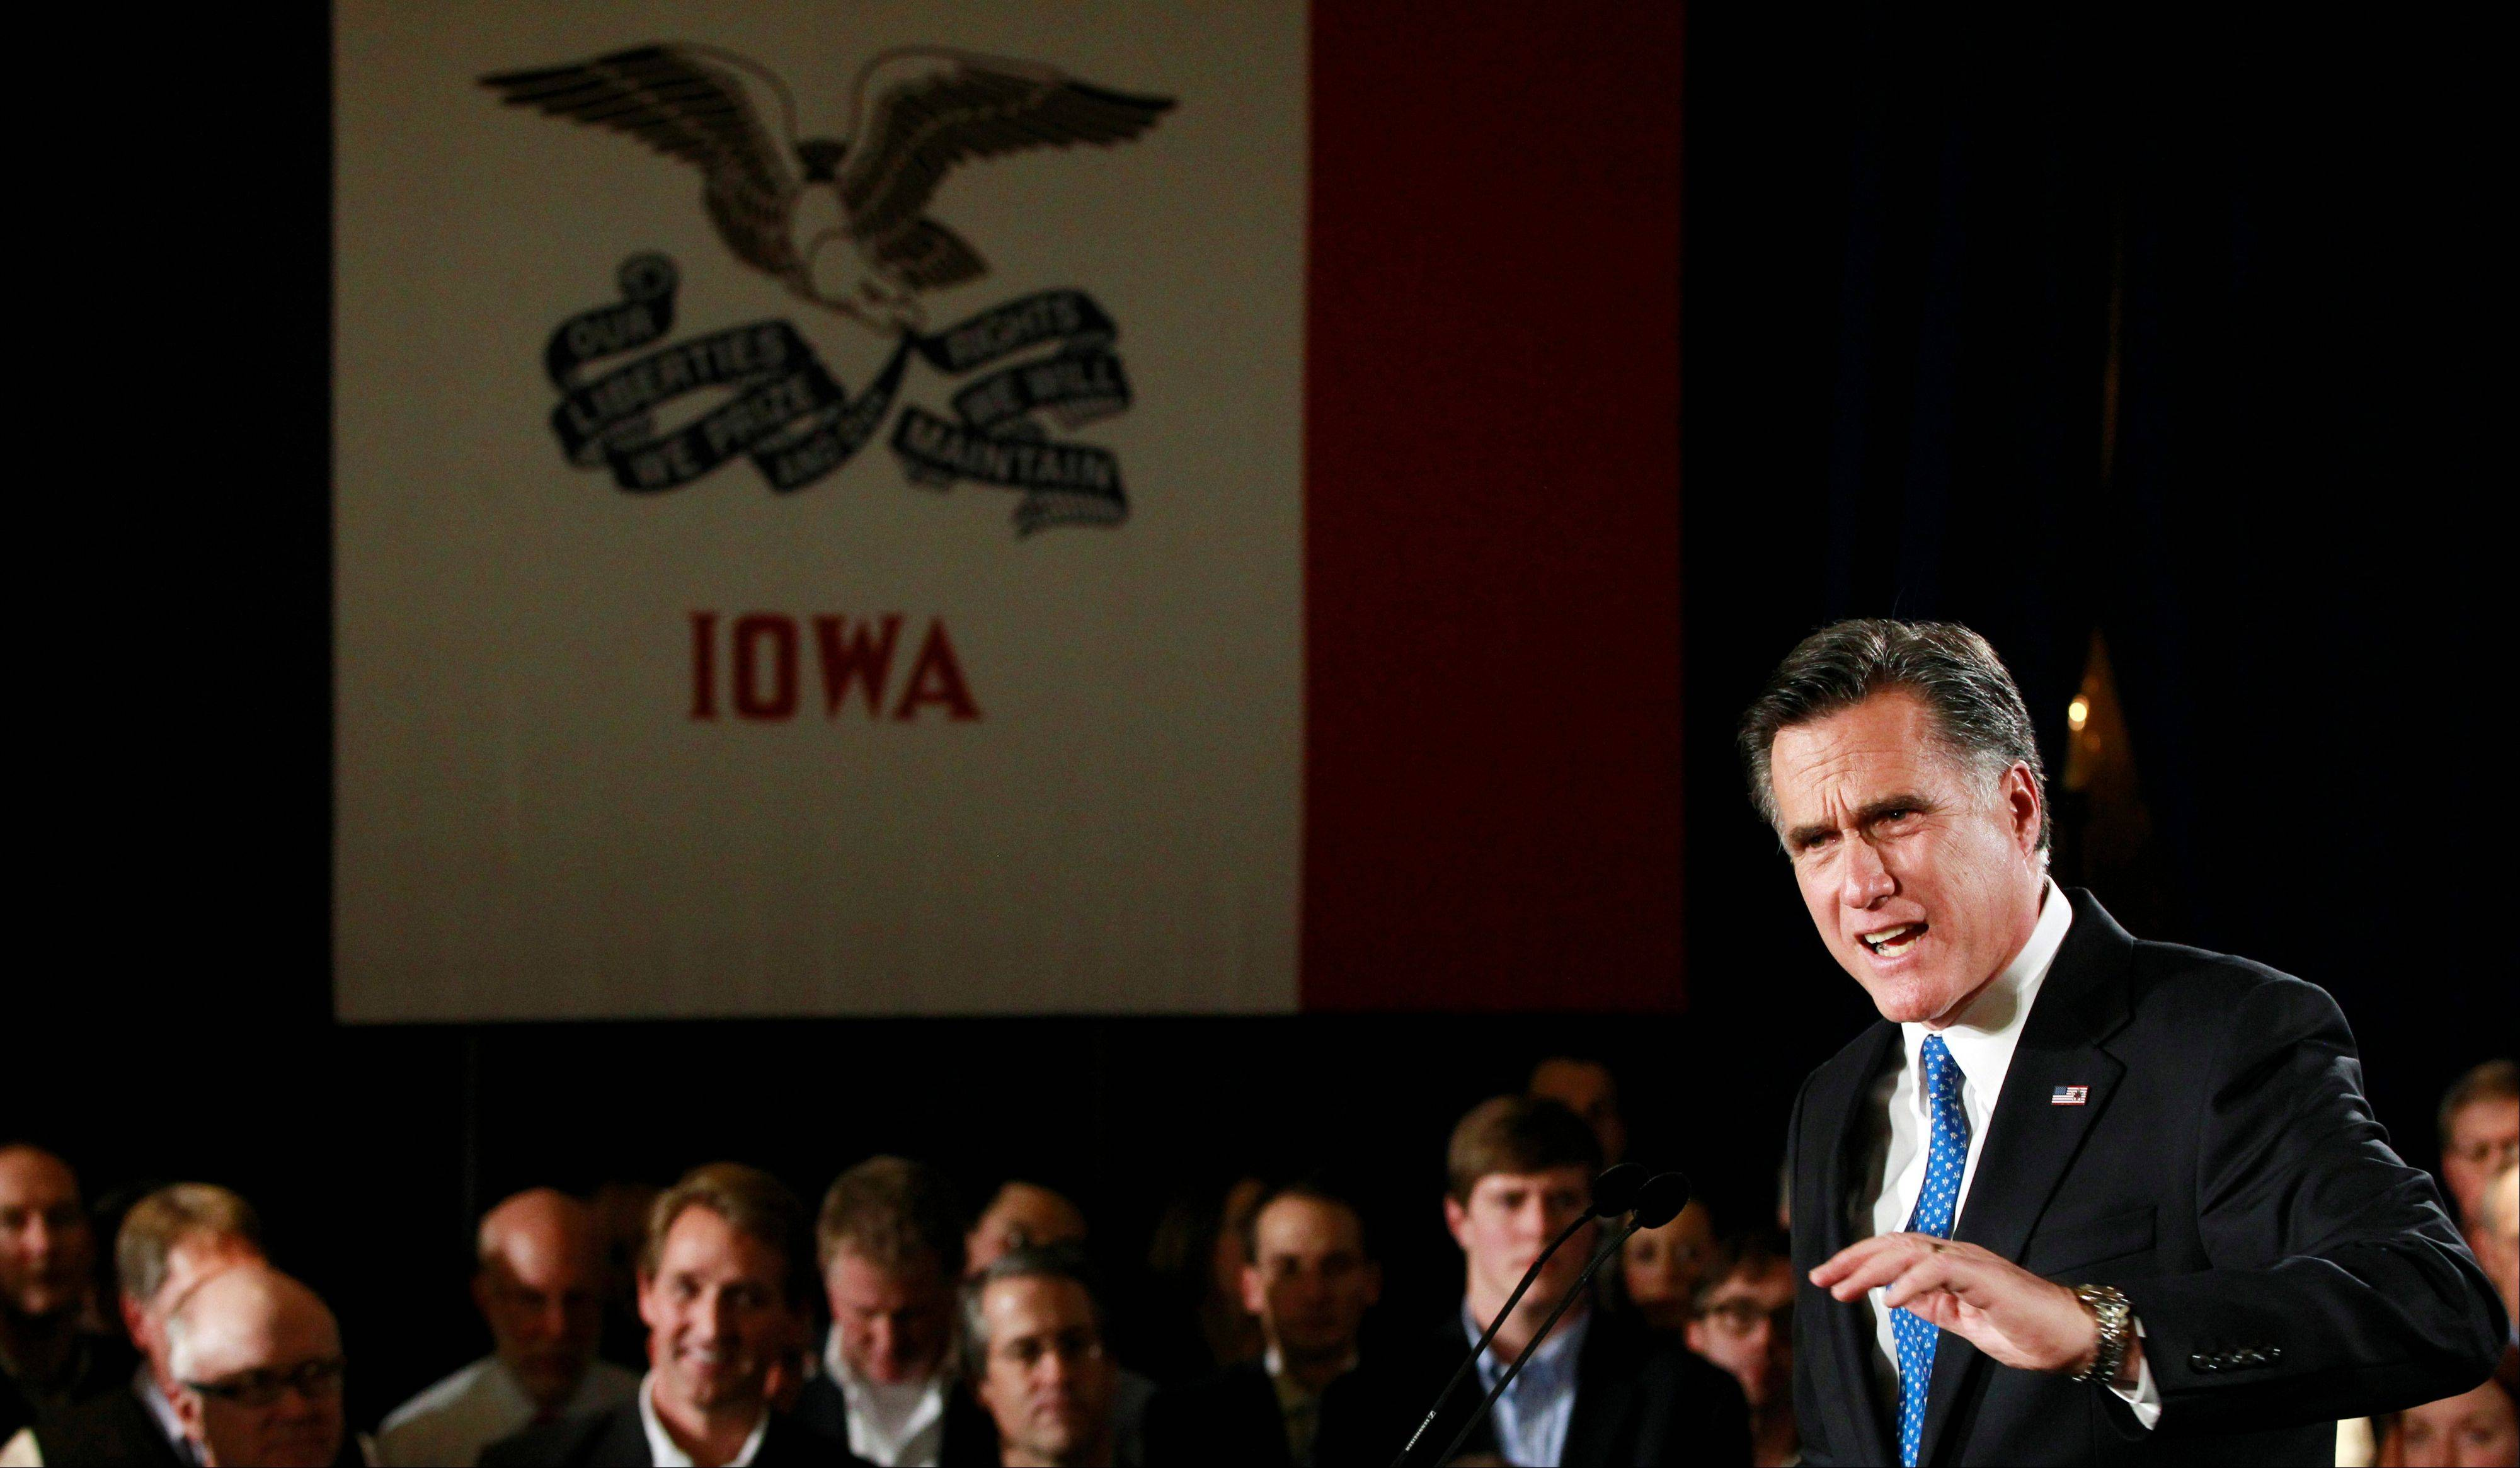 Romney, Santorum gear up for Illinois after Iowa